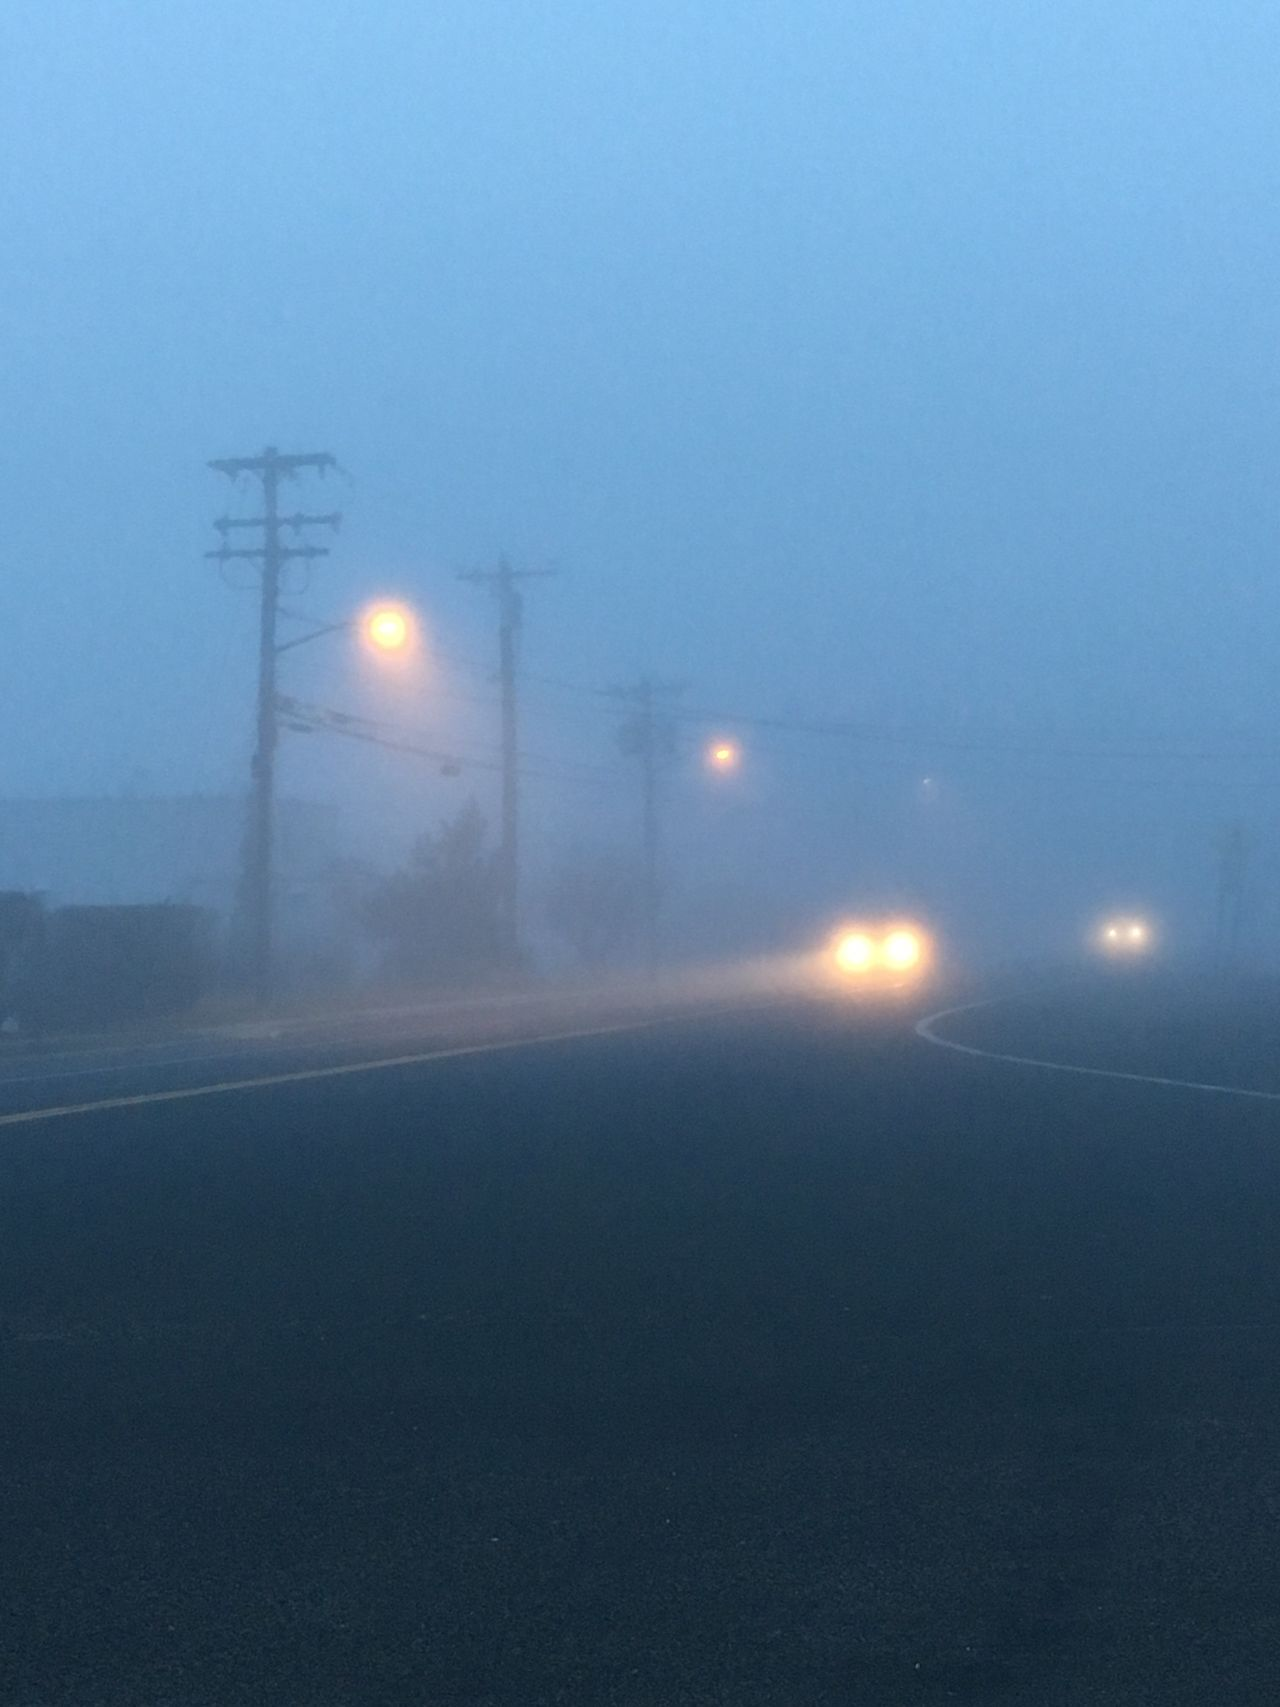 Illuminated Night Street Light Electricity  Lighting Equipment No People Outdoors Fog Cold Temperature Winter Nature Road Sky Foggy Foggy Day Foggy Weather Car Light